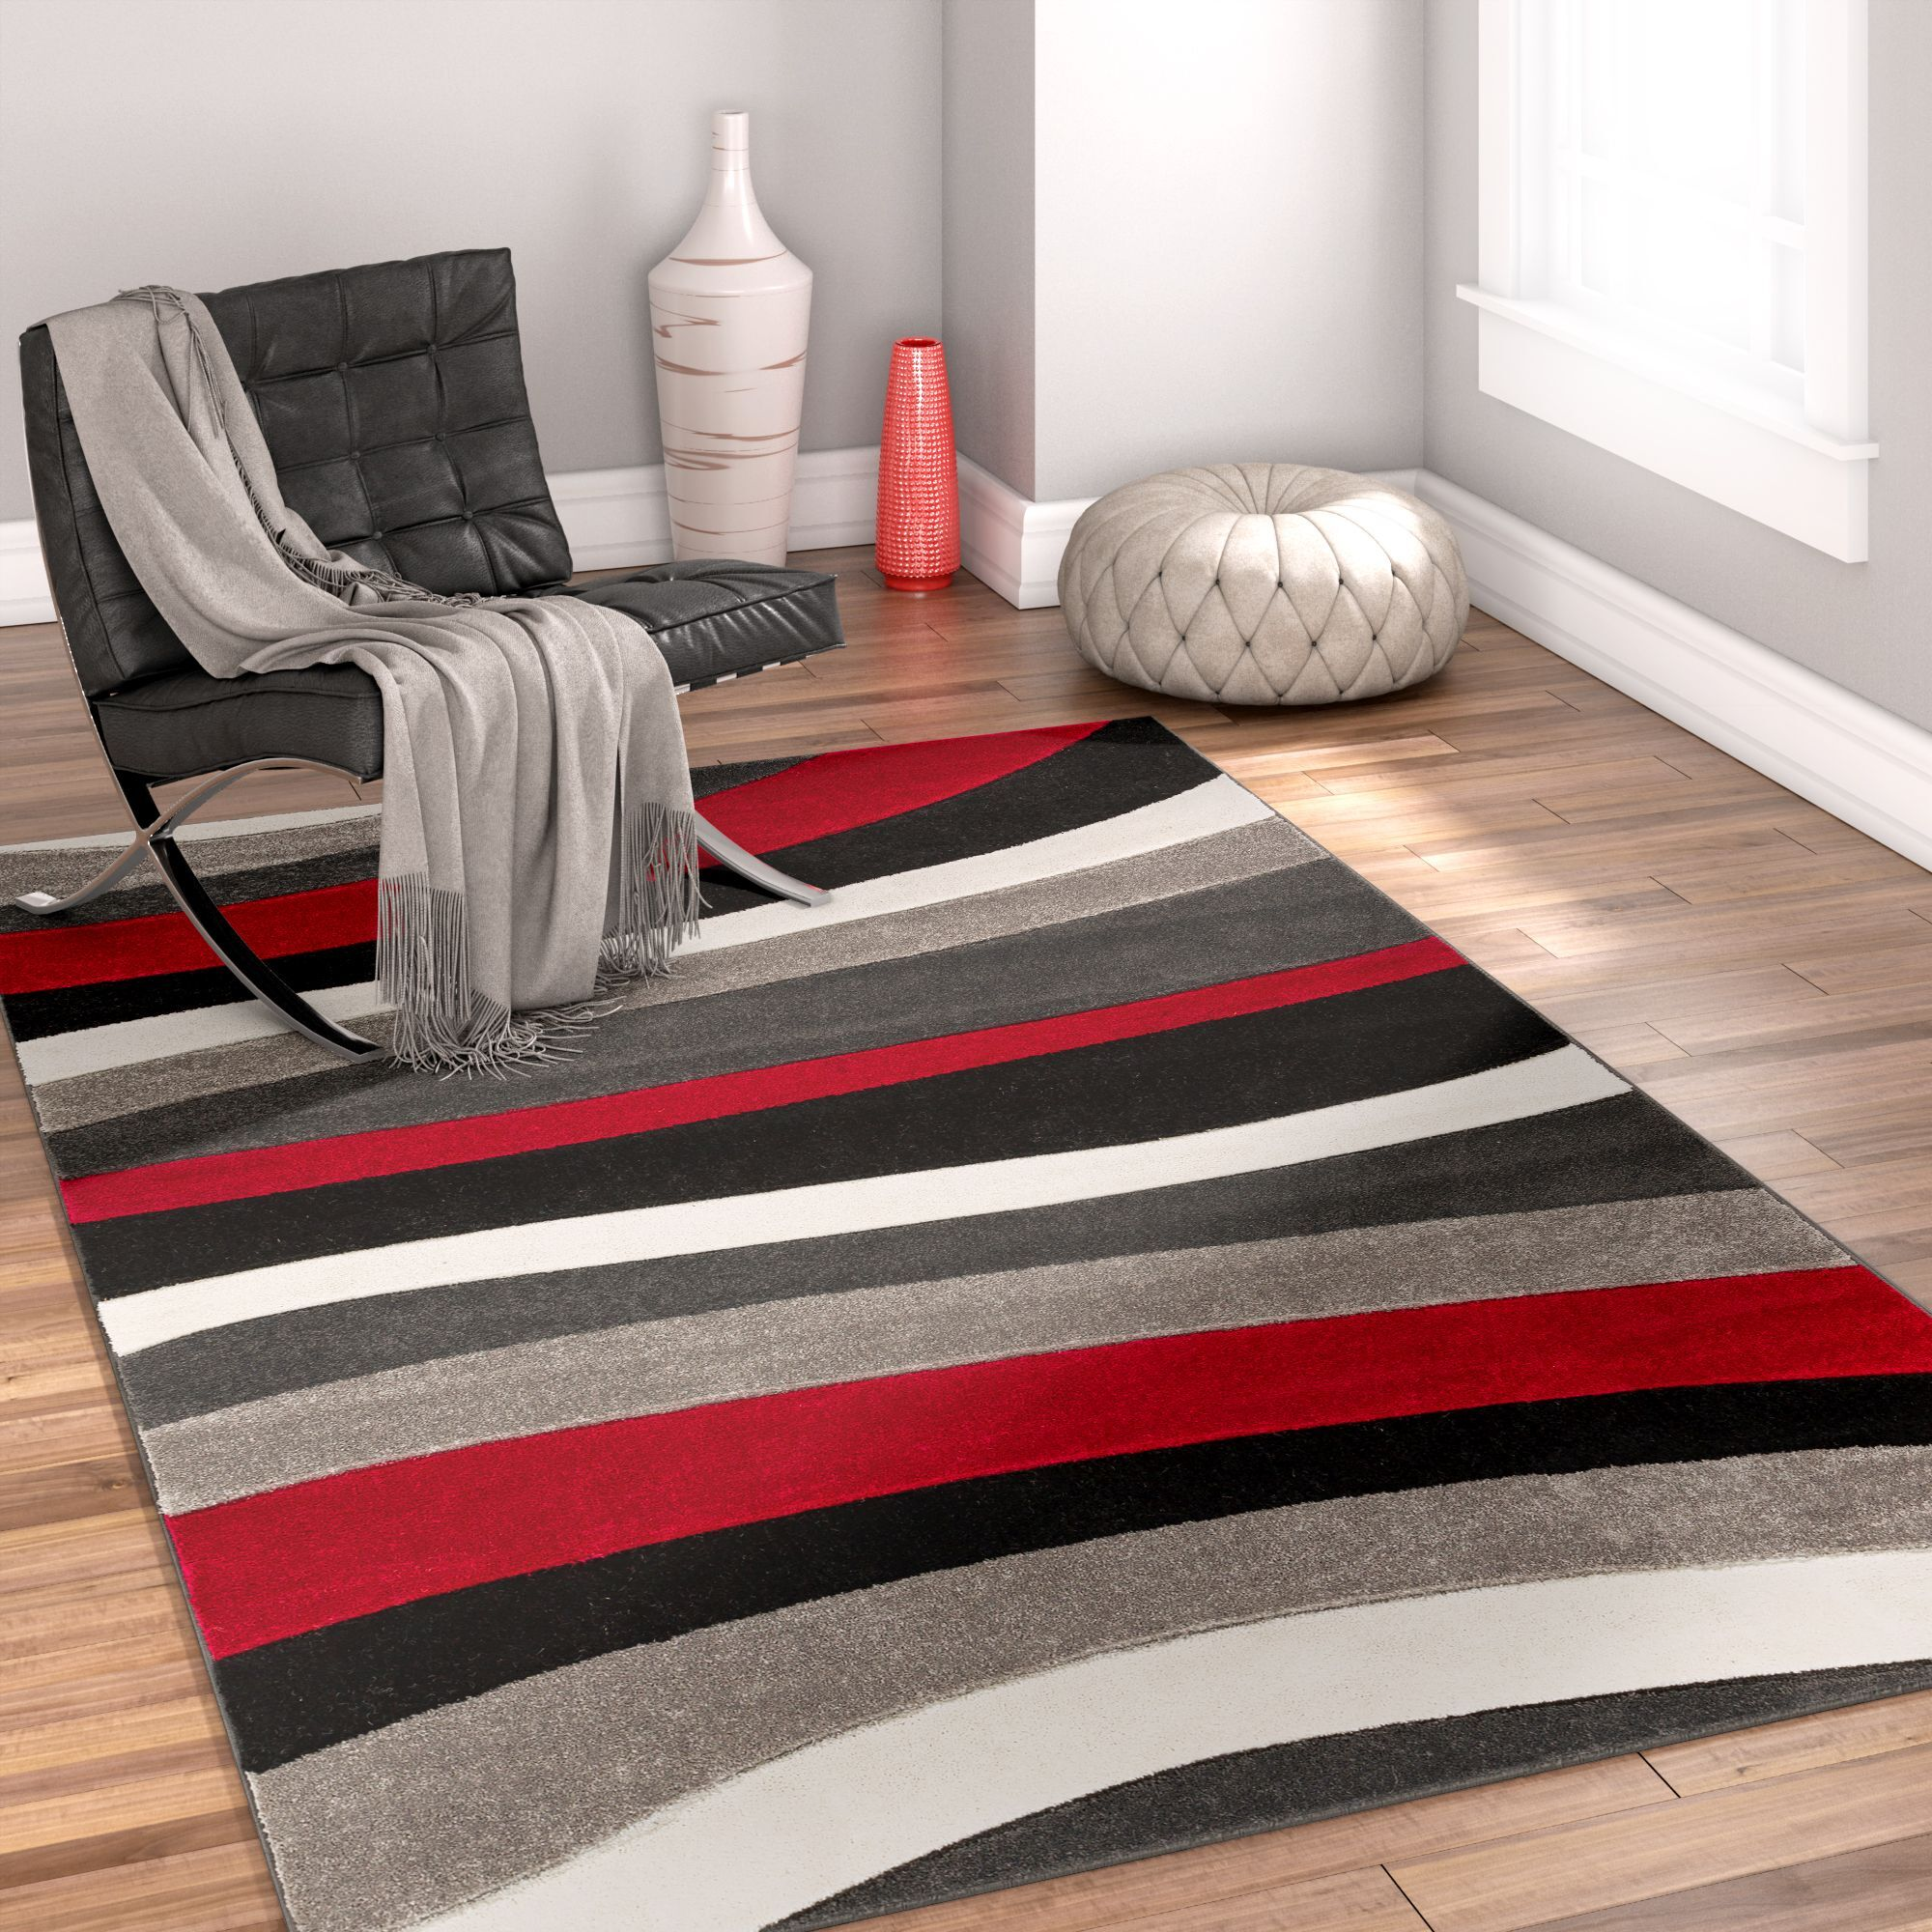 Rad Wave Red/Gray/Black Area Rug Rug Size: 5'3